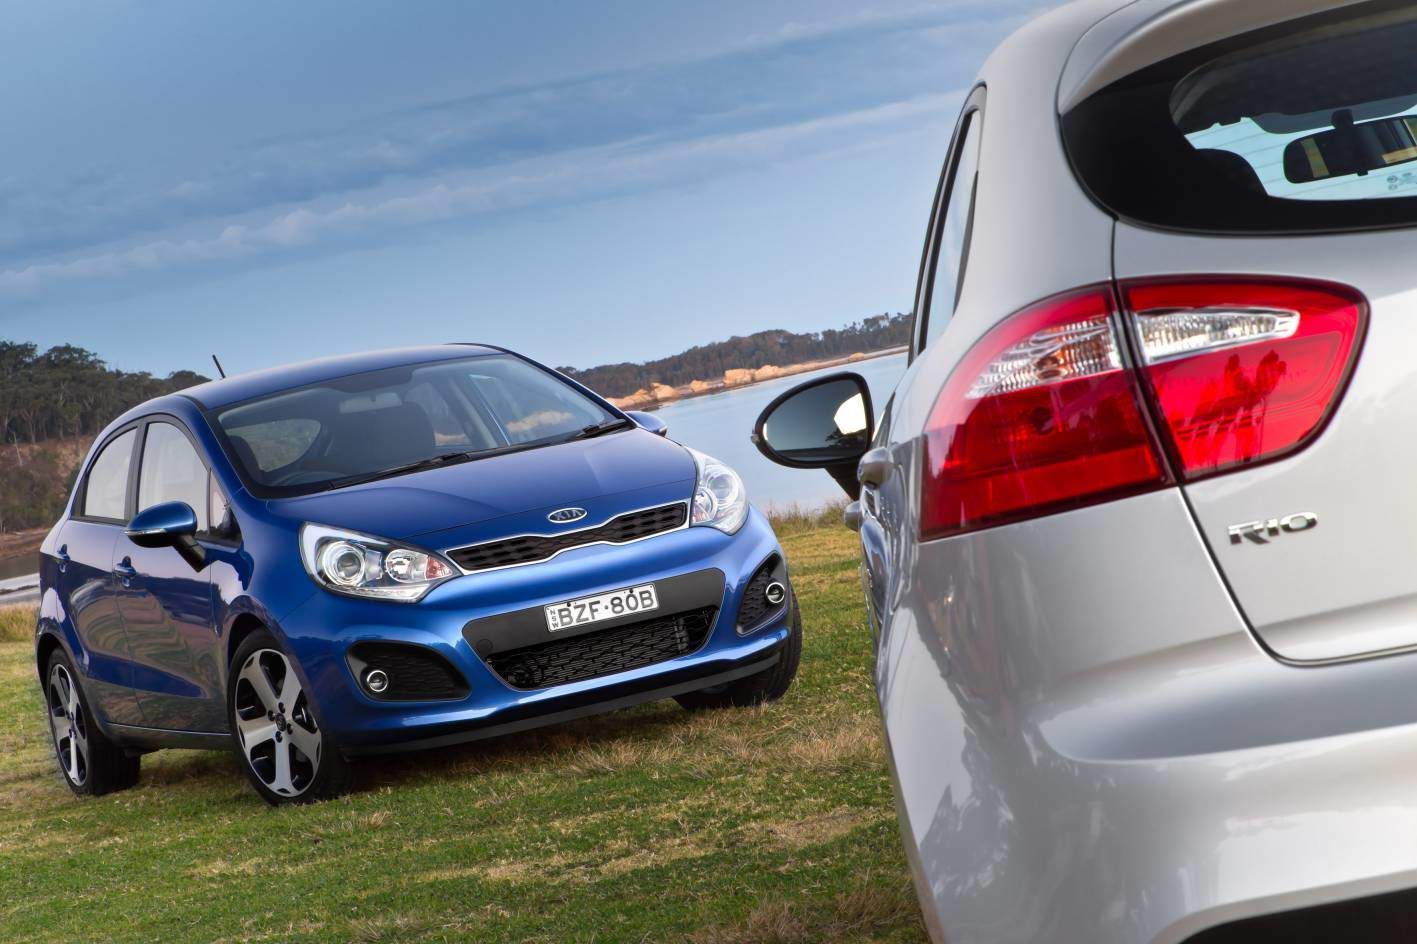 More sales growth for Kia